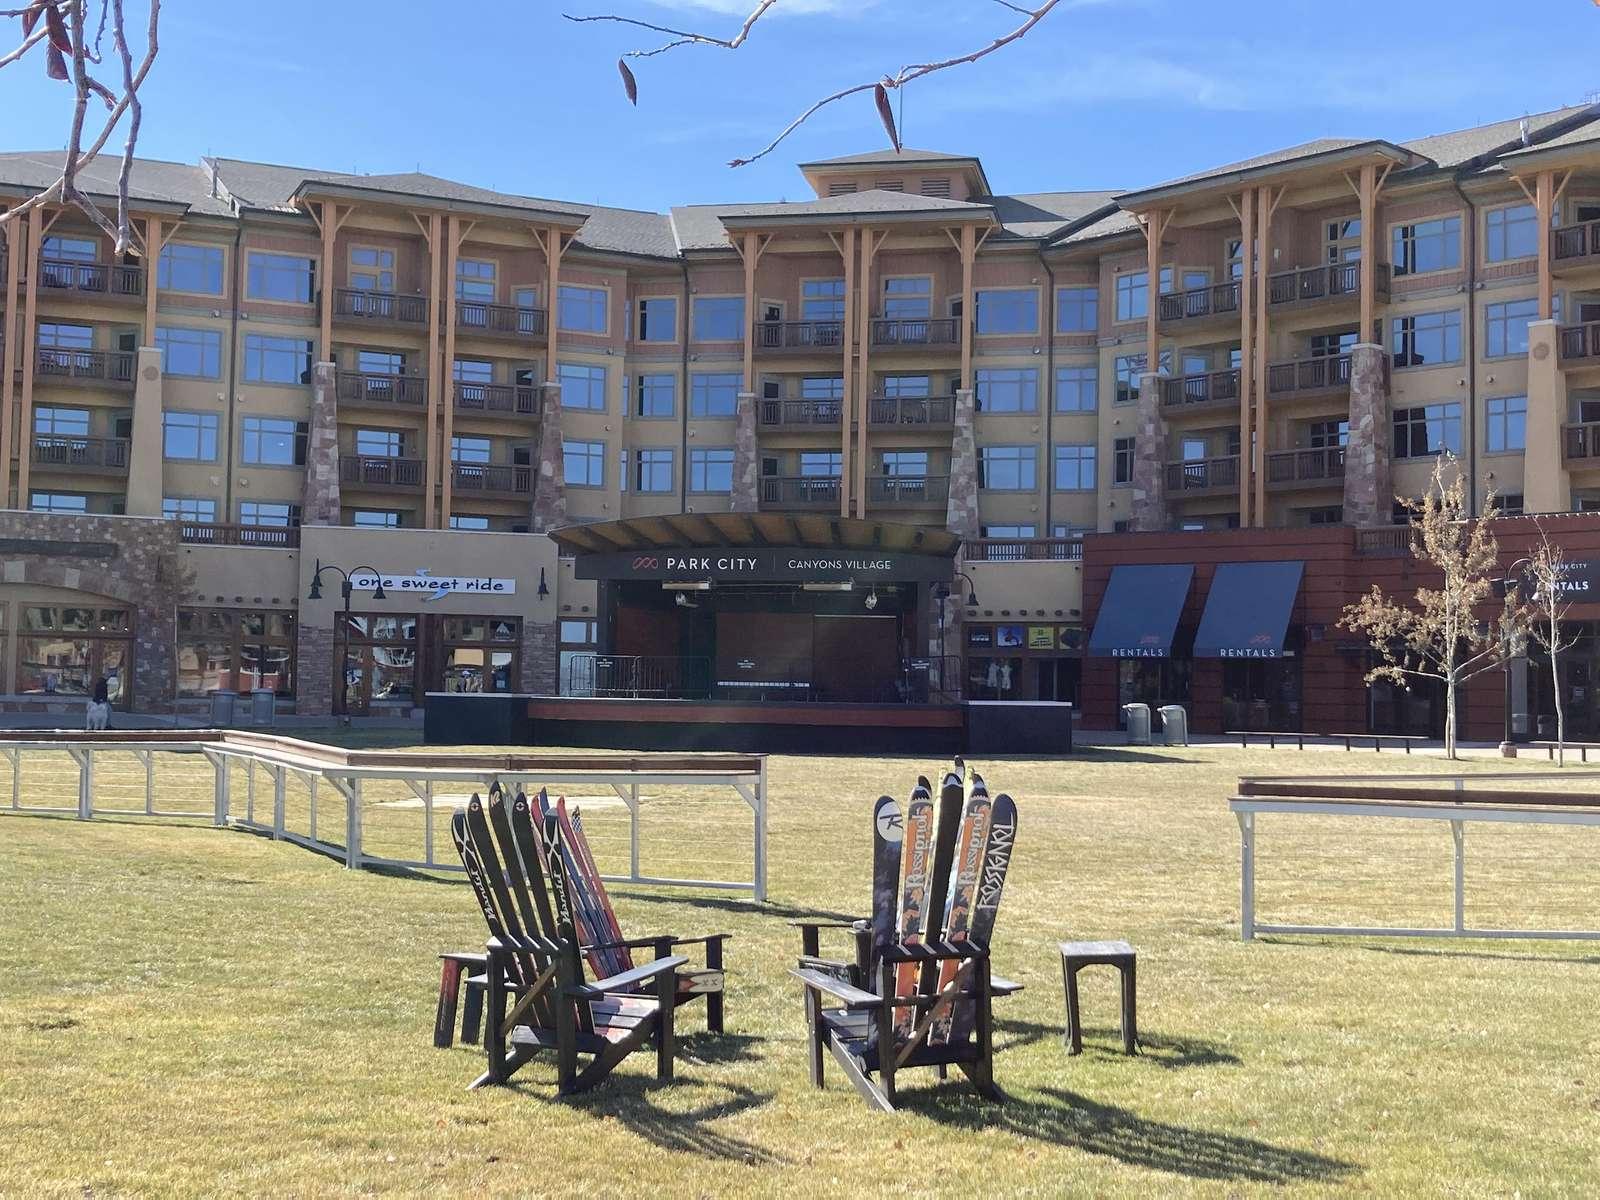 Canyons Village has the ski beach, ski lifts, restaurants, shops, rentals, and the ski and snowboard valet